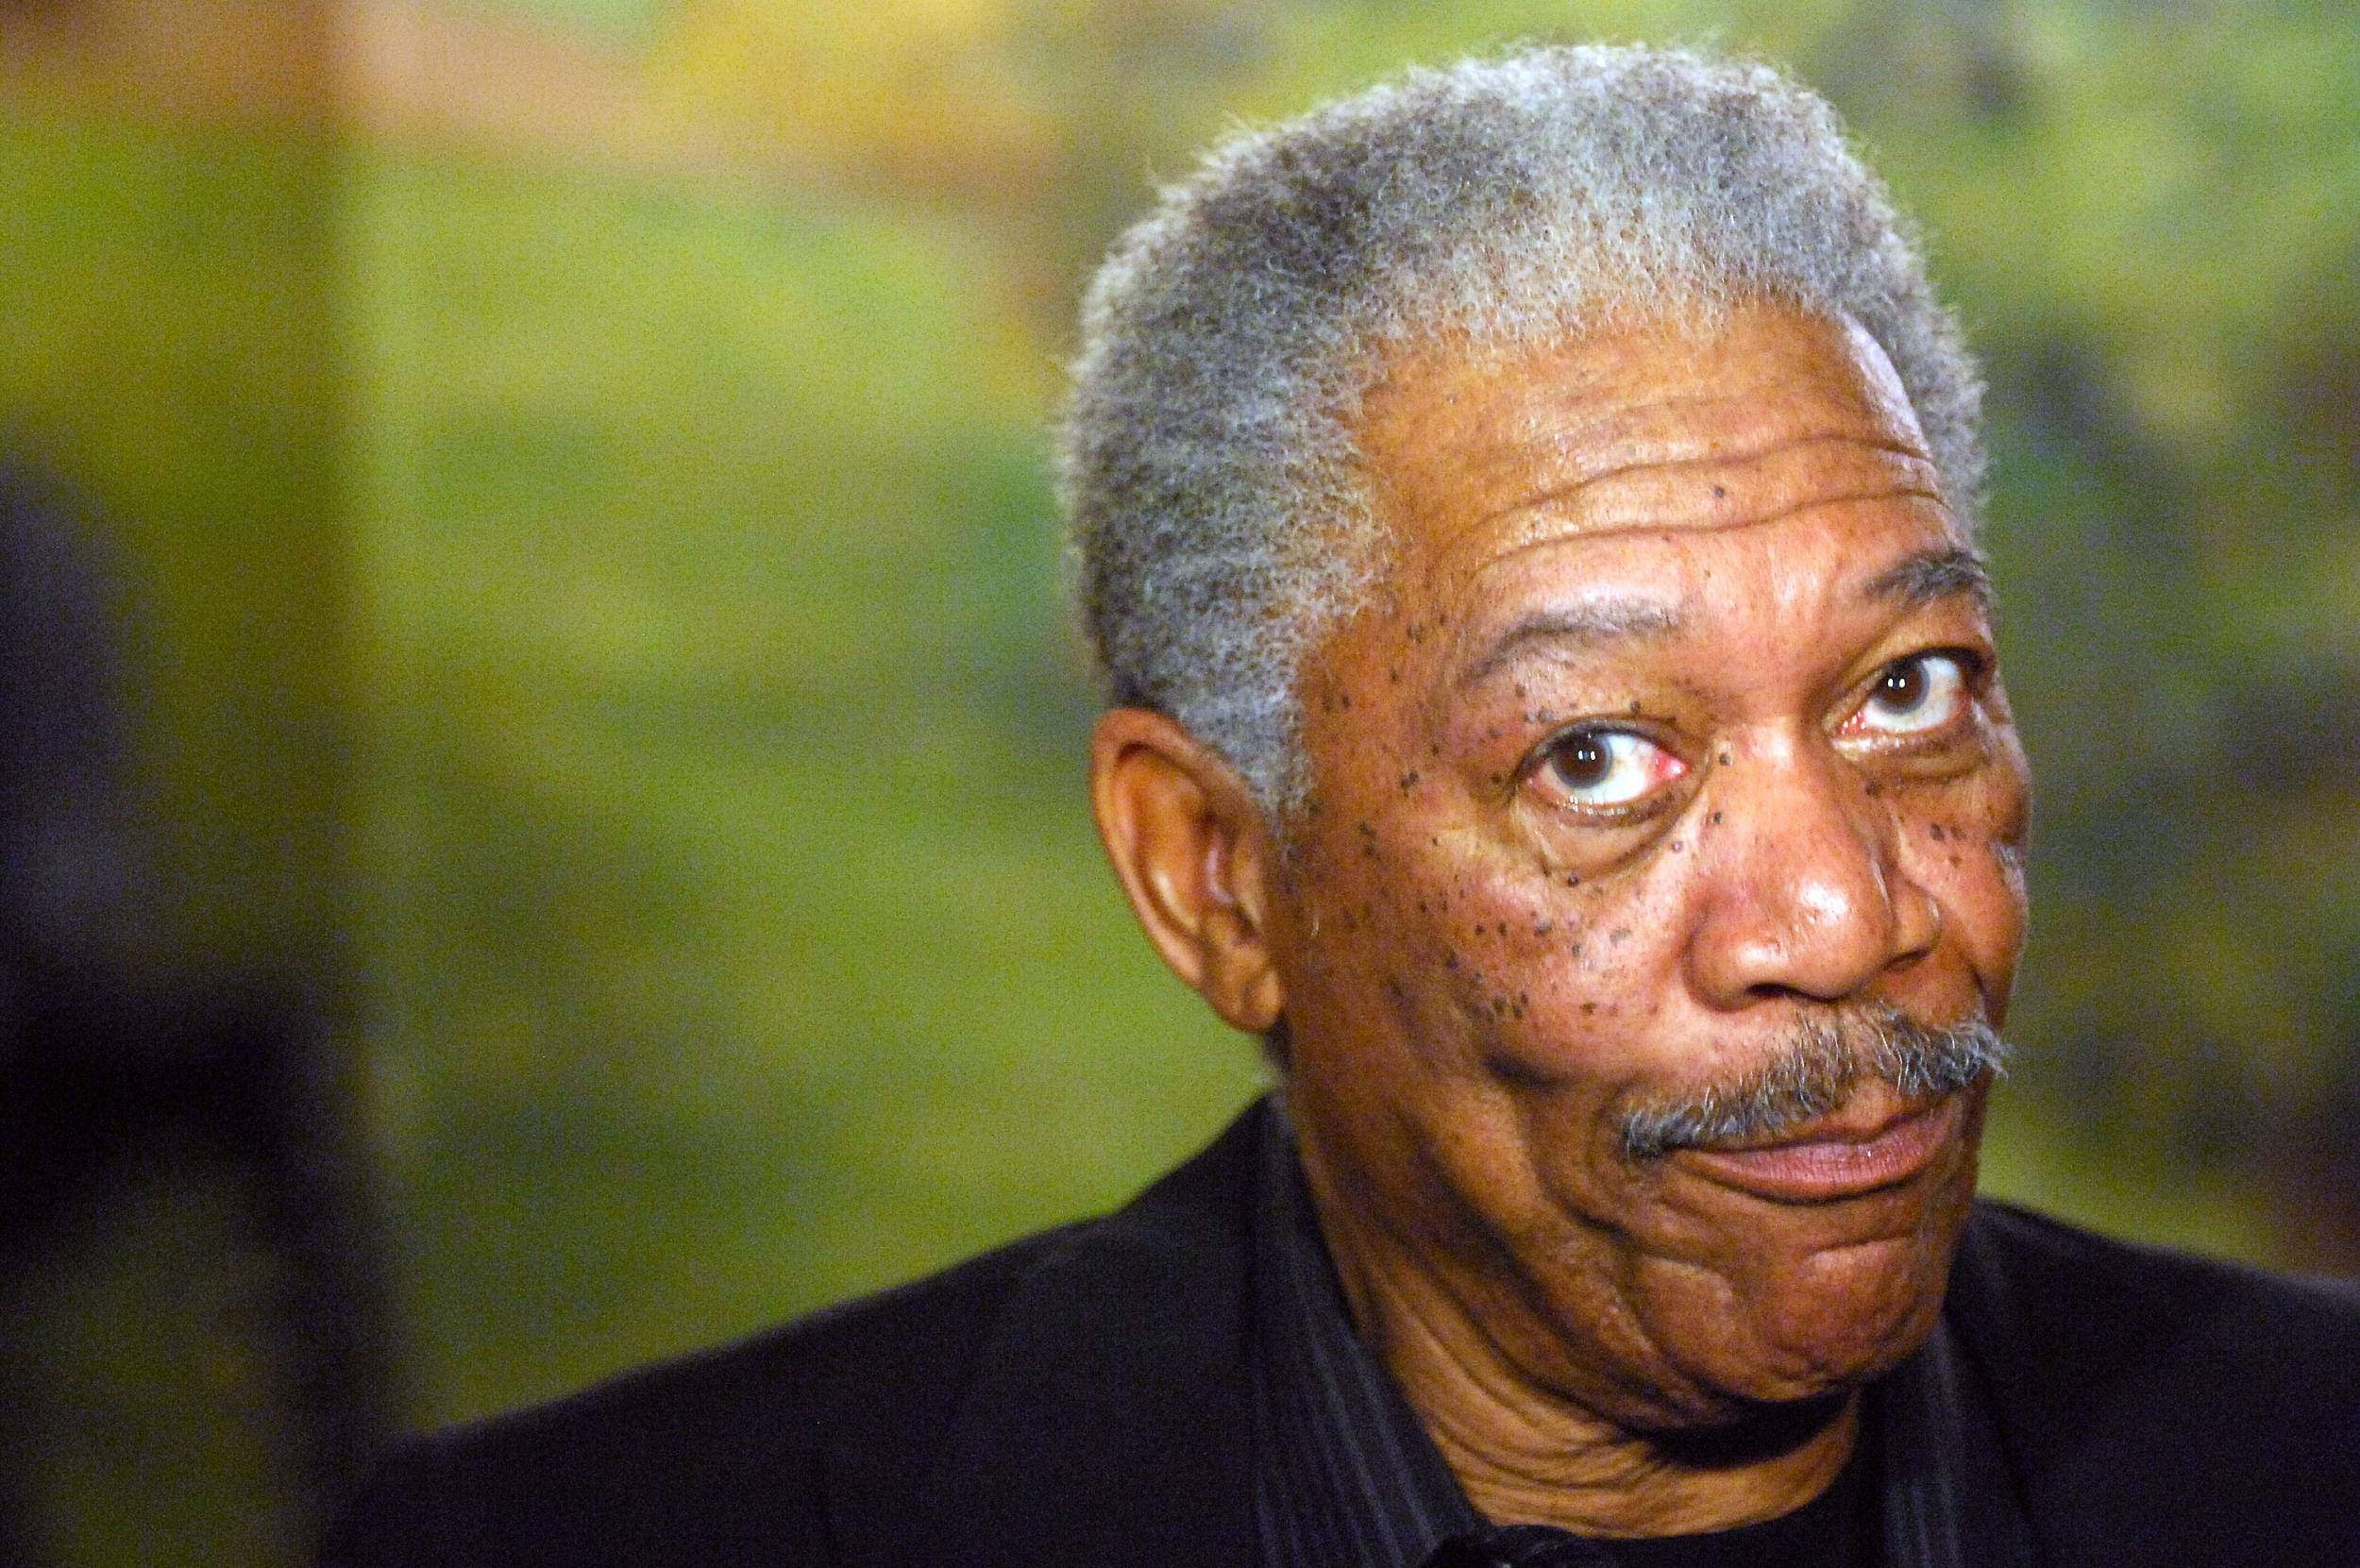 morgan freeman - latest news, breaking stories and comment - the